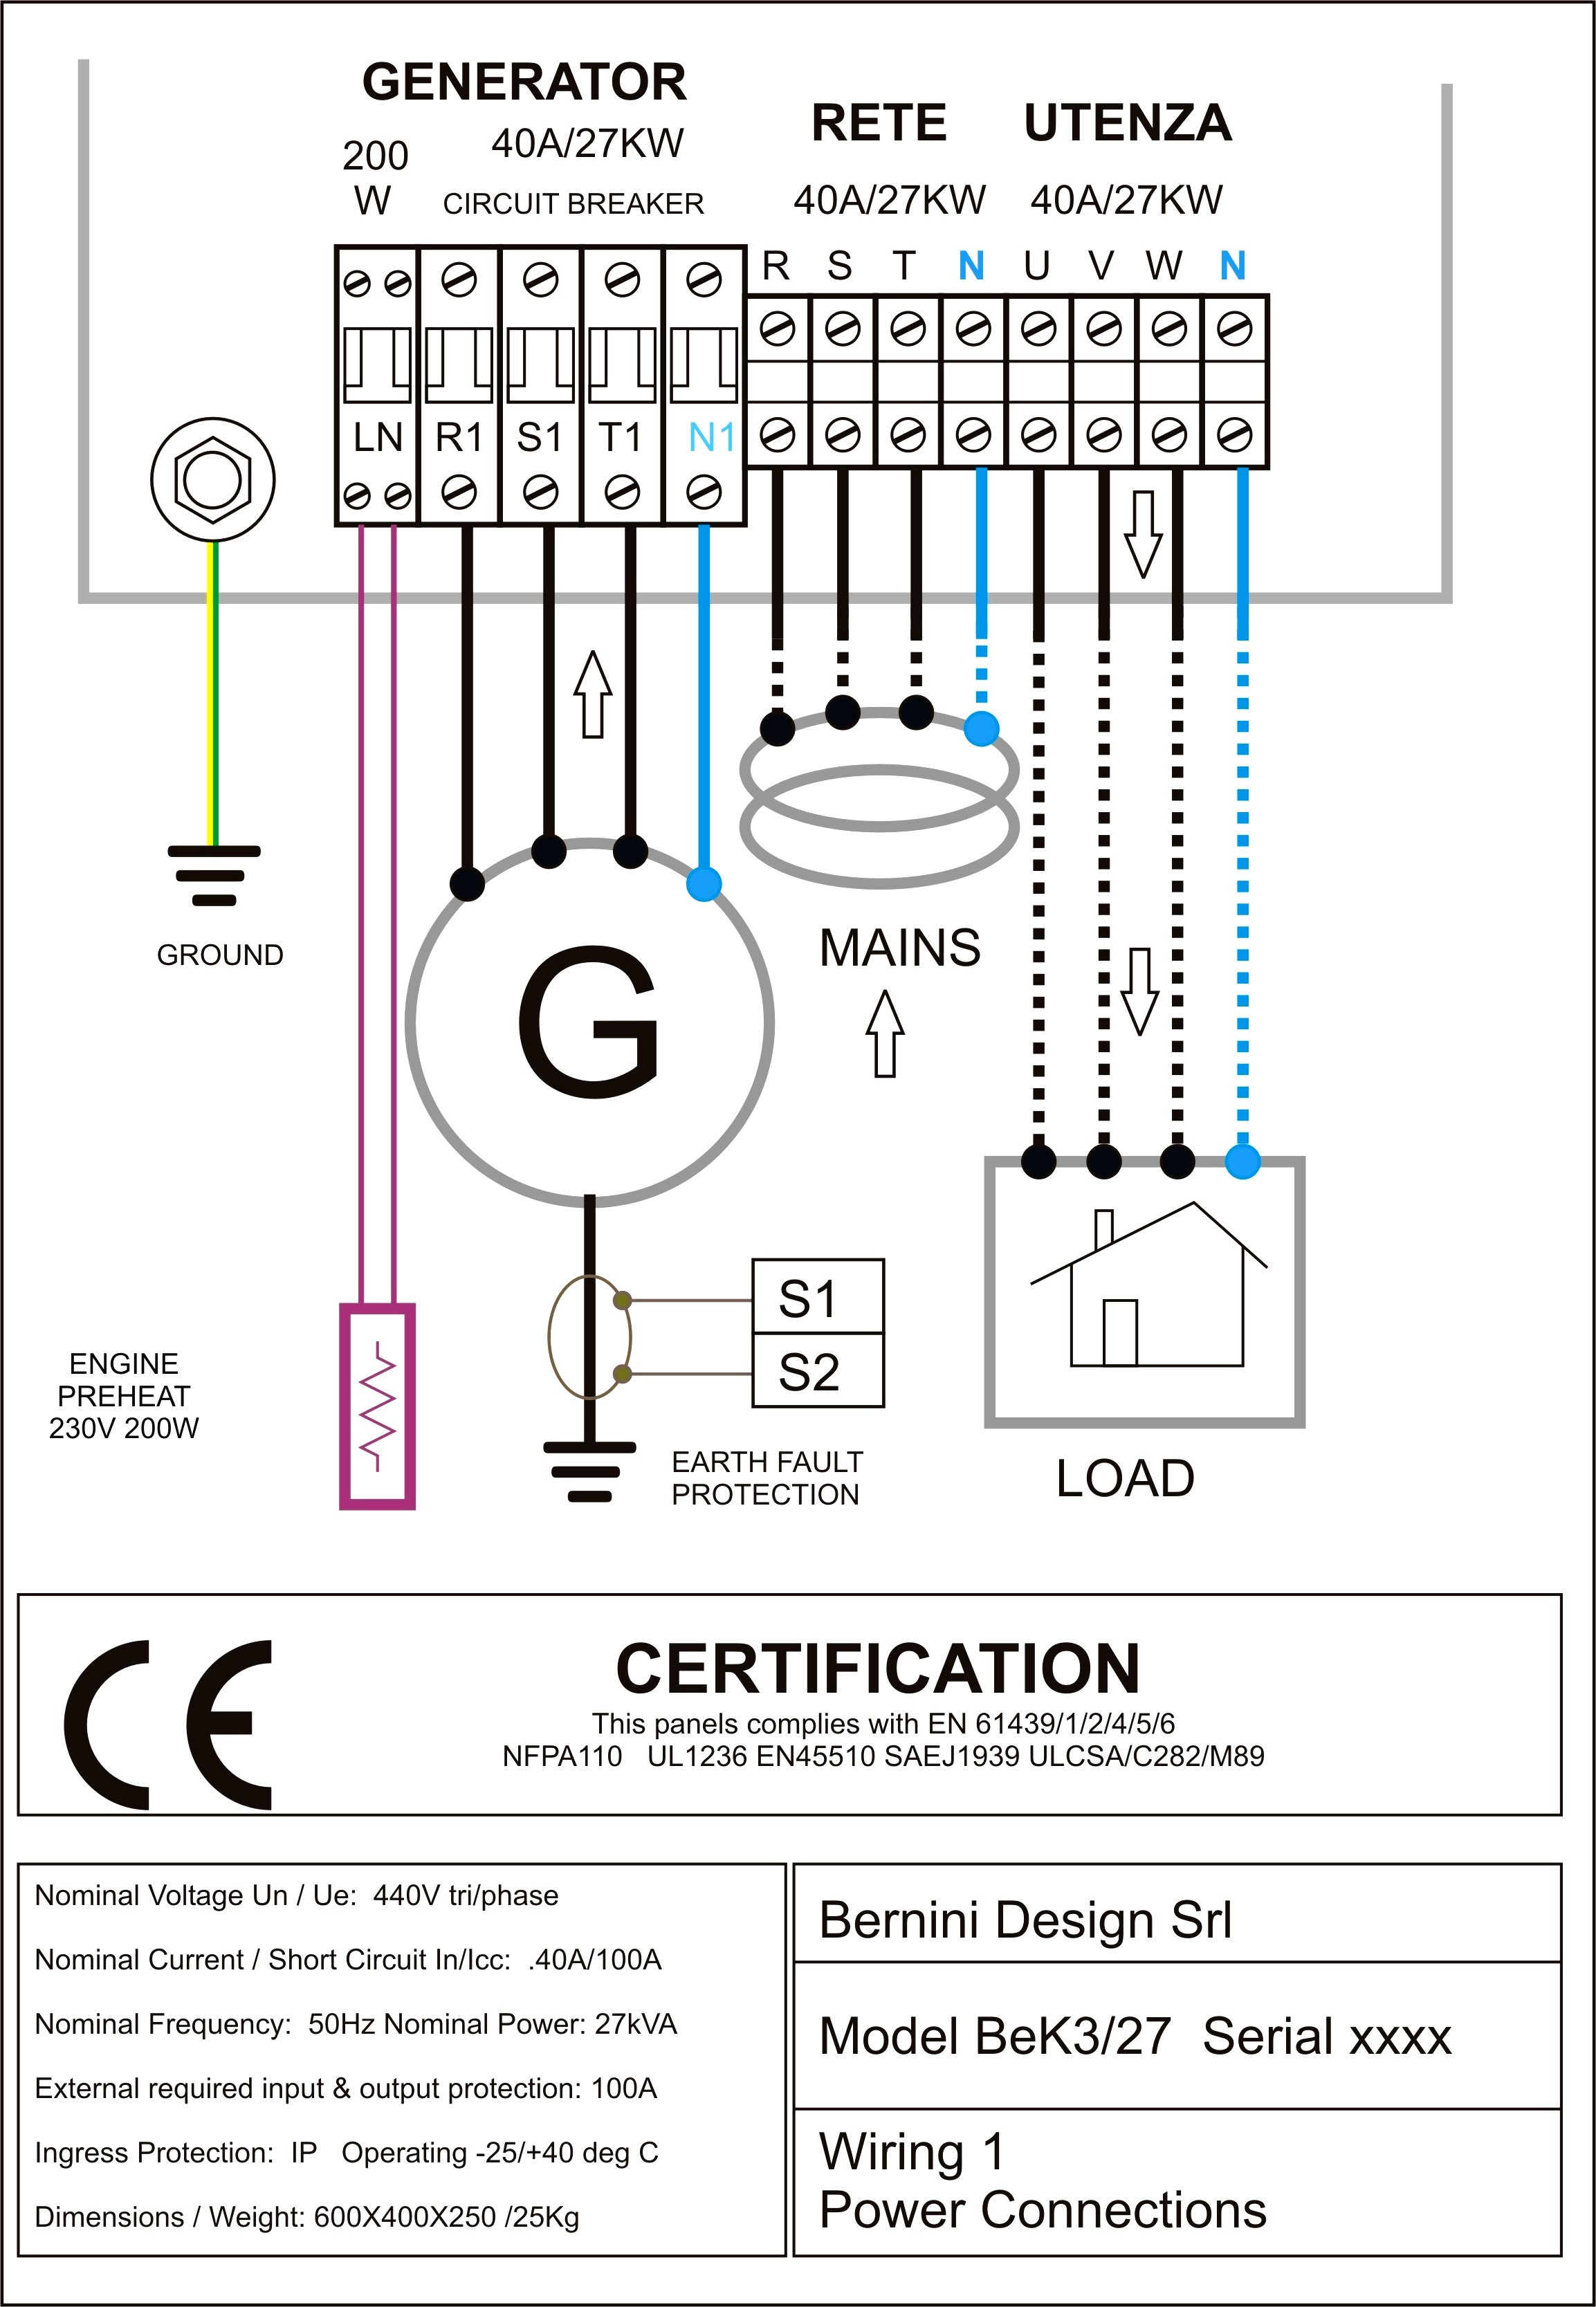 Control Panel Wiring Diagram Dimmer Wiring Diagrams Schematics Control Panel Wiring Diagram Dimmer Wiring Diagrams Schematics Control Panel Electrical